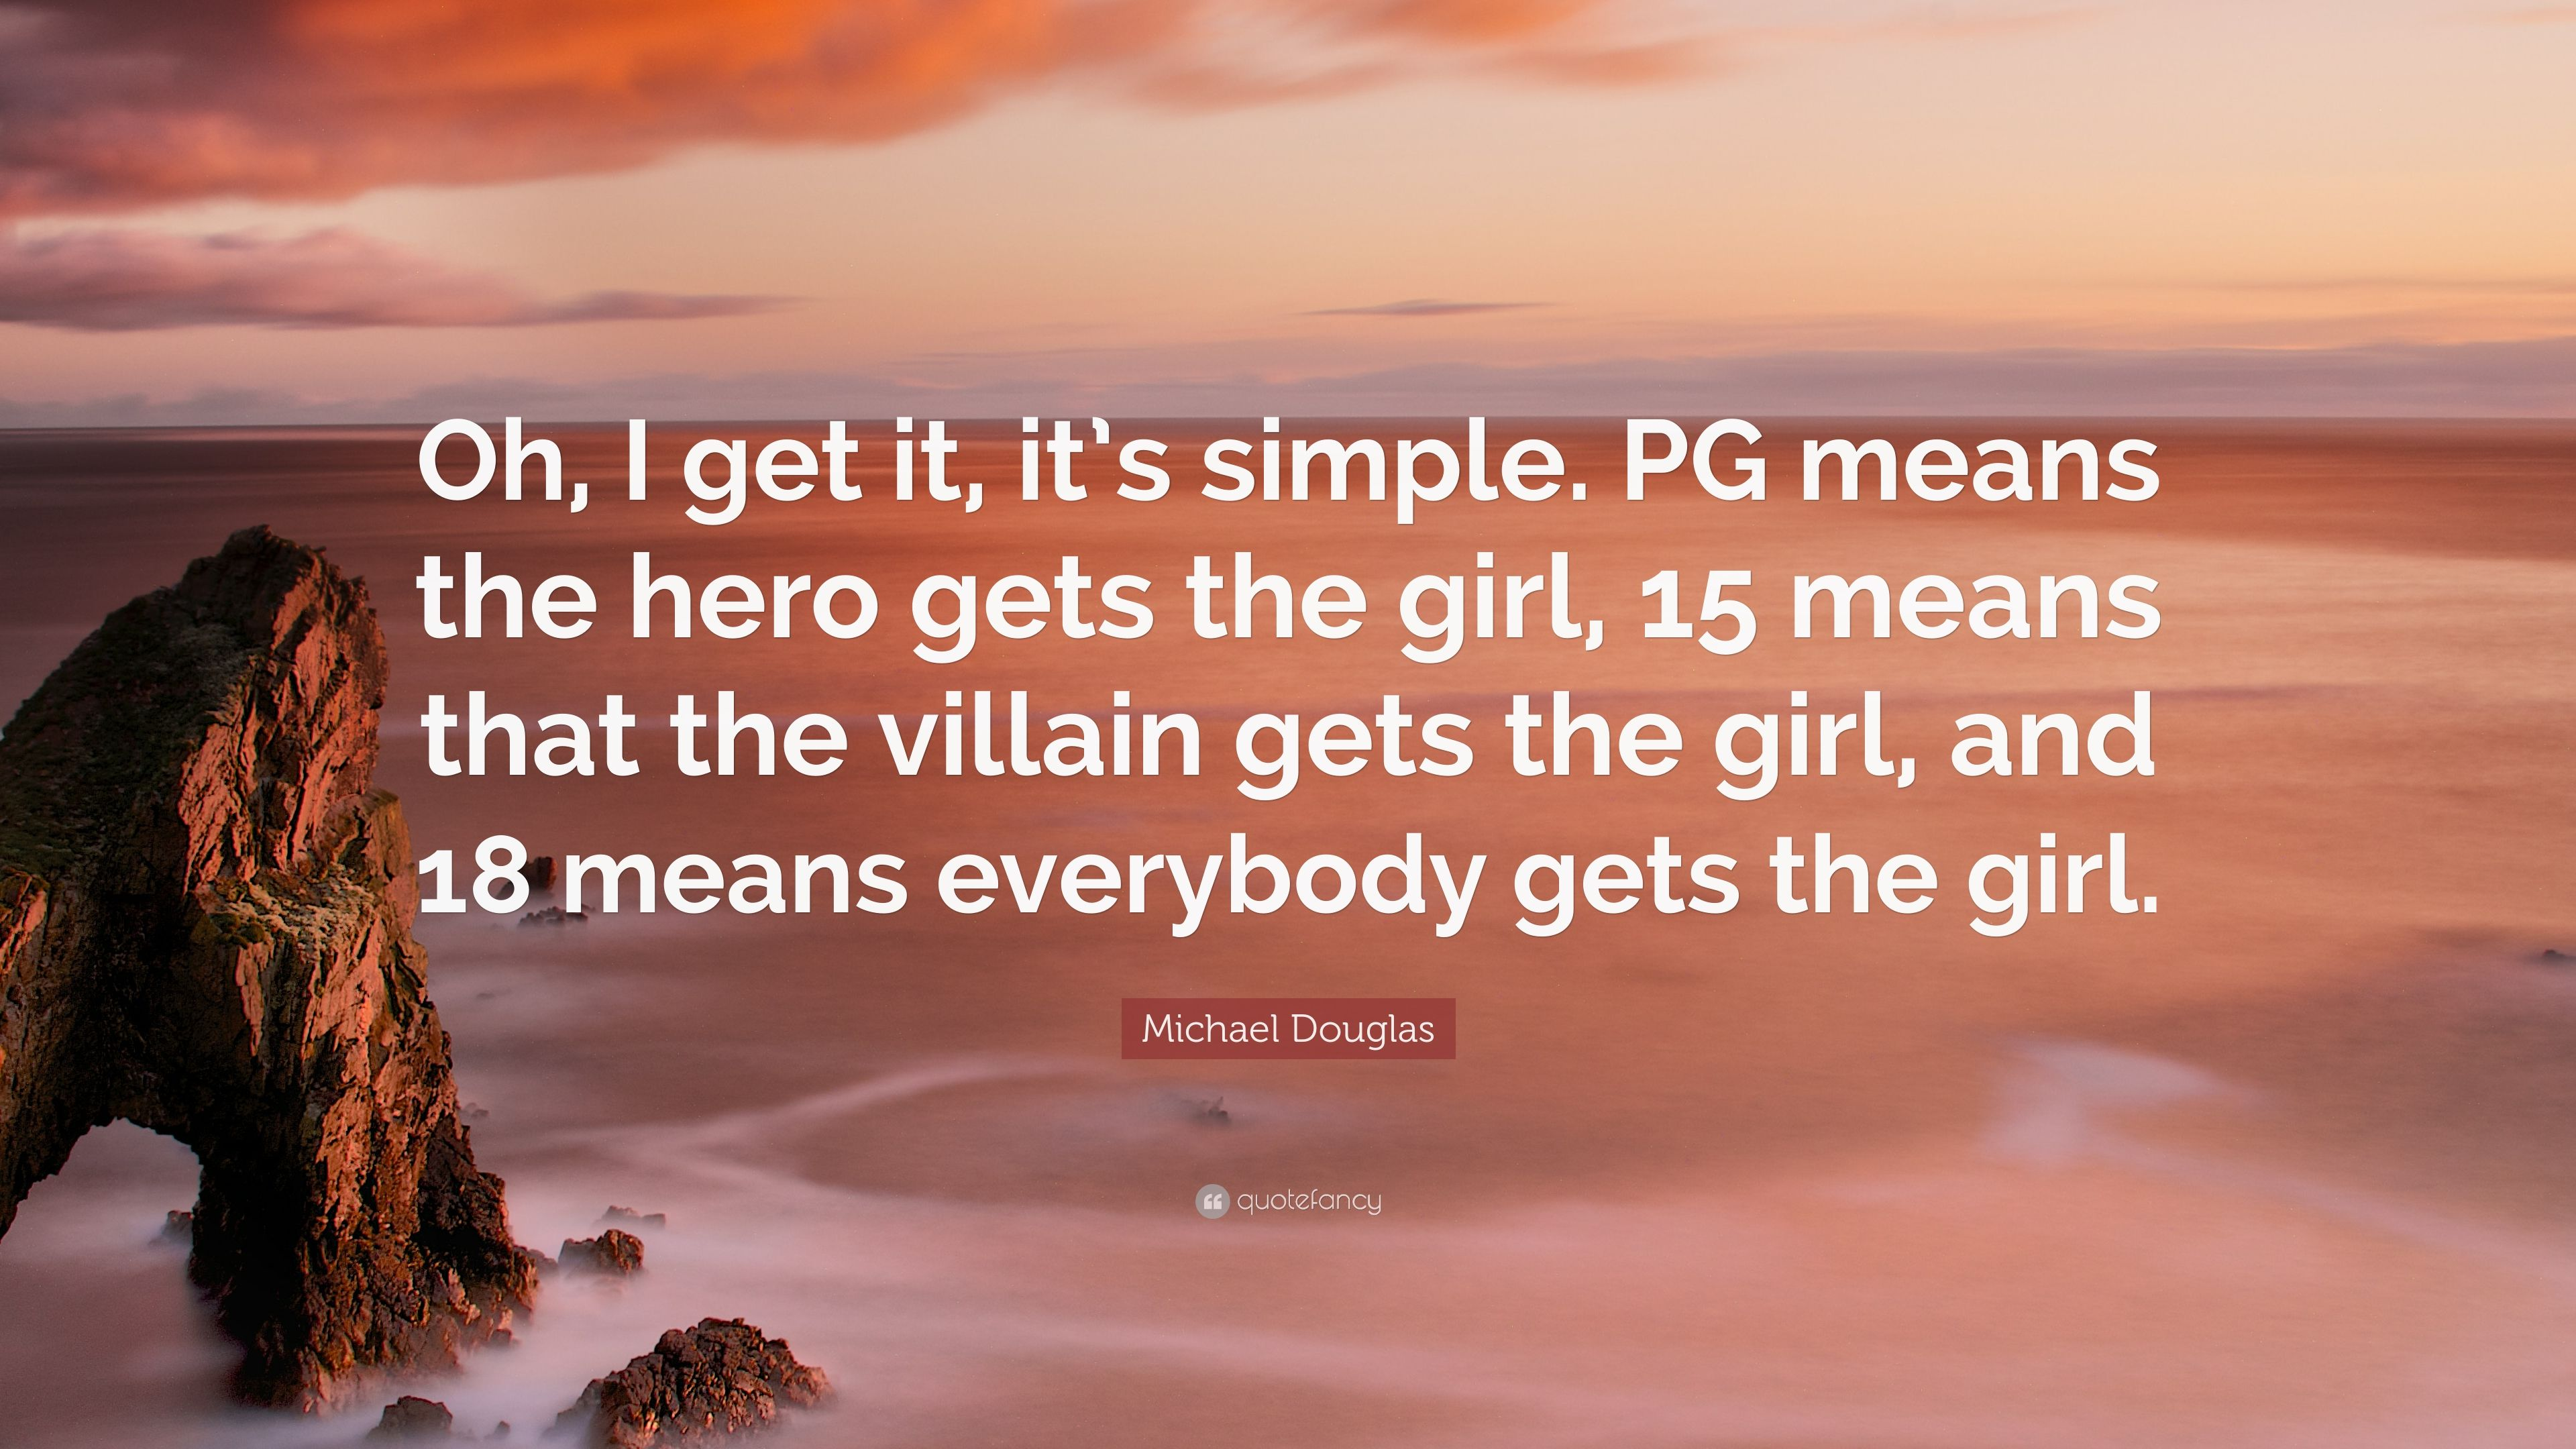 michael douglas quote oh i get it it s simple pg means the hero